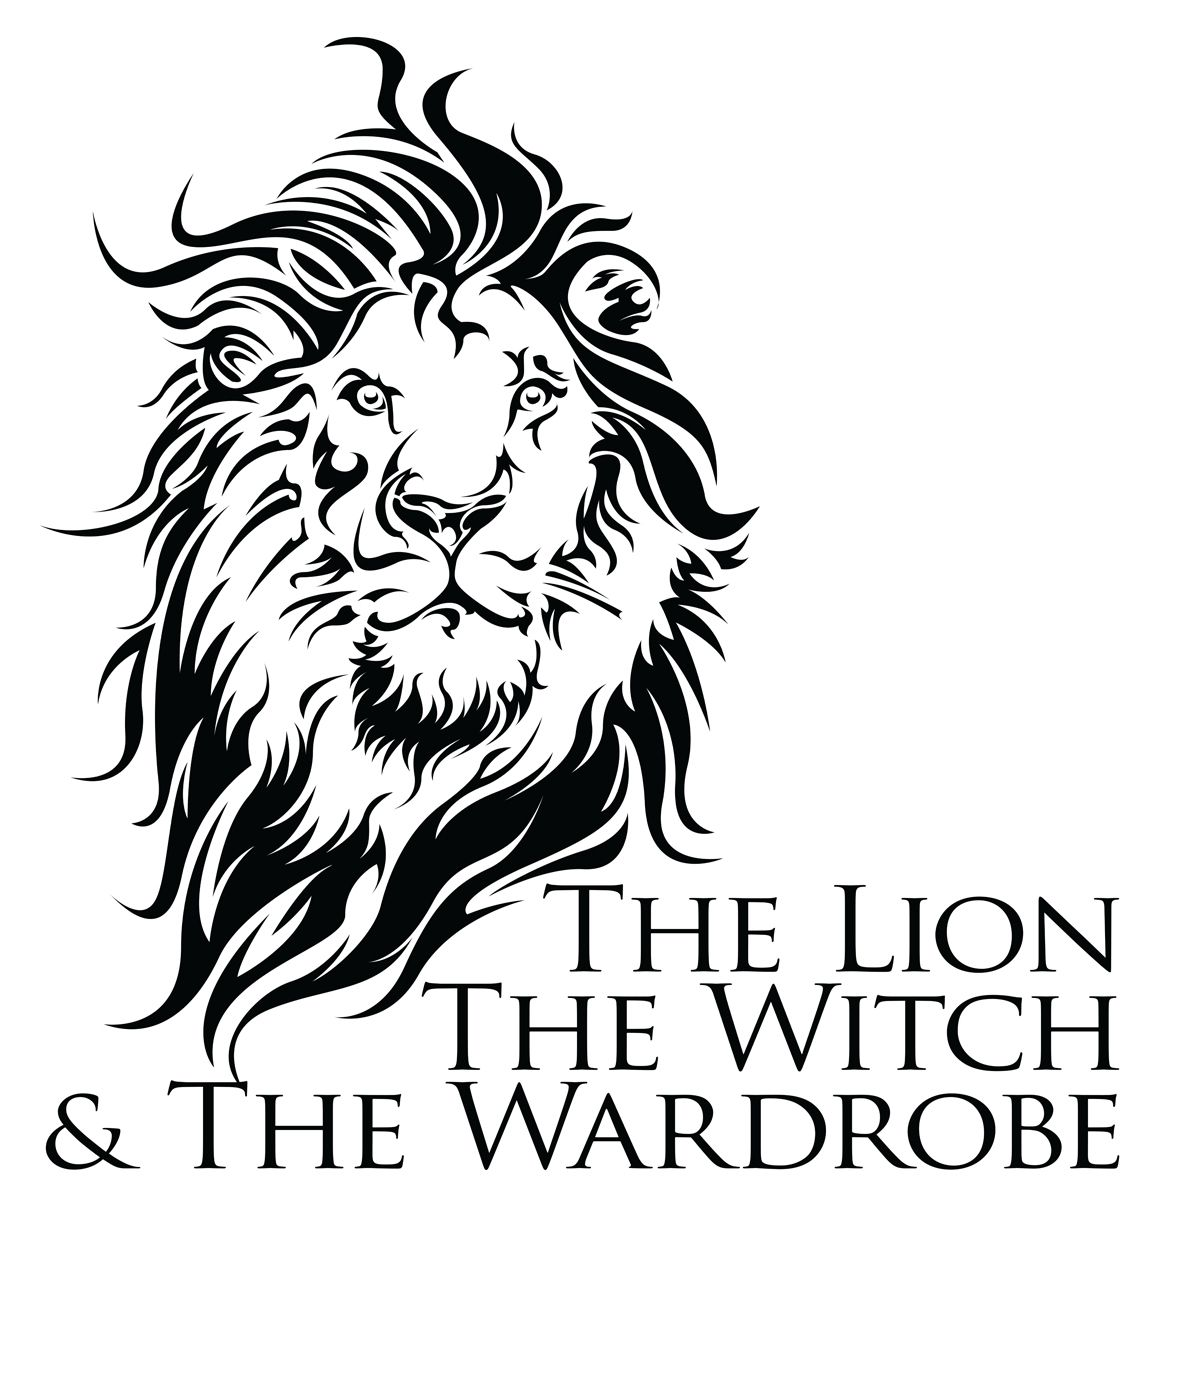 the lion the witch and the wardrobe logo Google Search